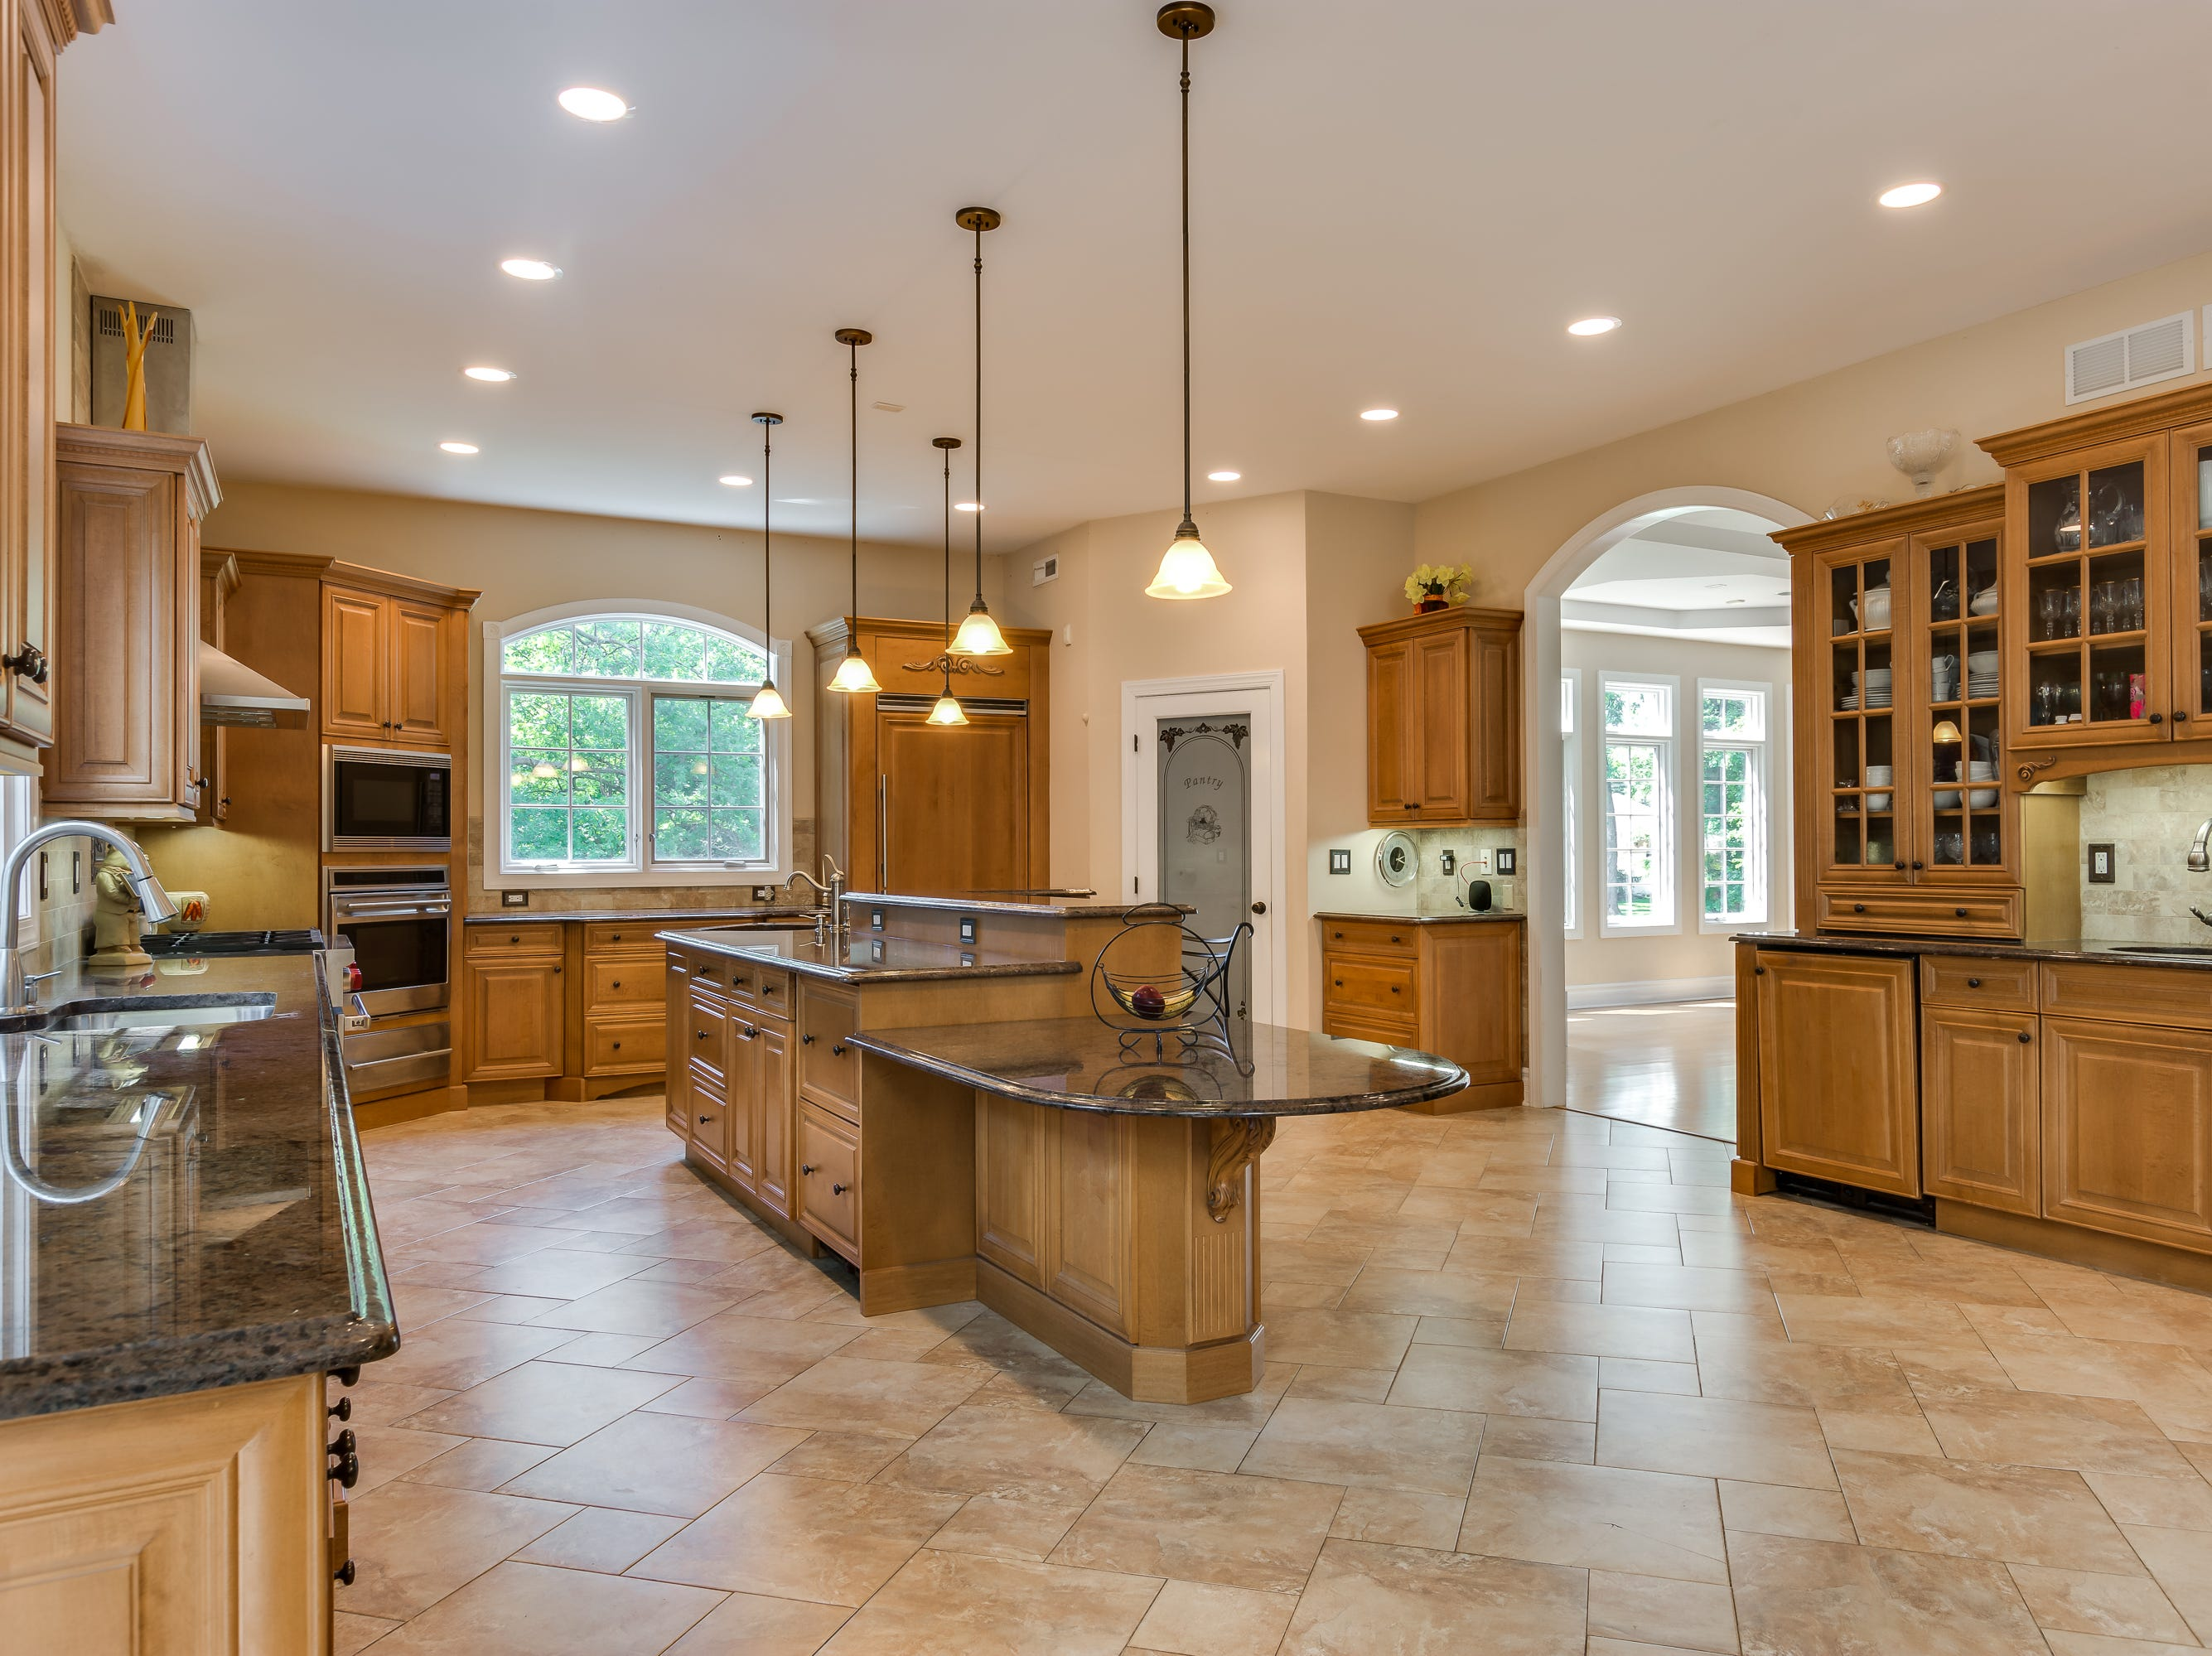 The kitchen has a center island with three tiers, a wealth of maple cabinets, pendant and recessed lighting and granite counters. The appliances all are professional grade.